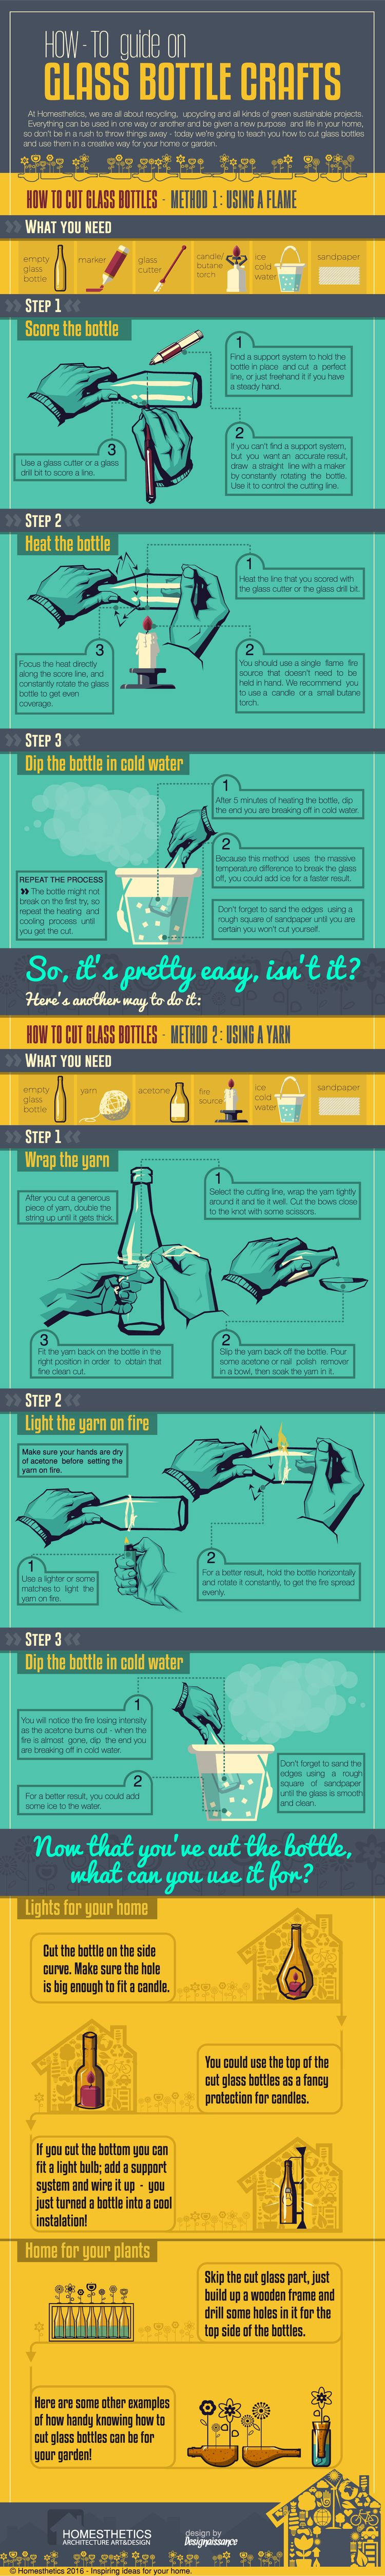 44-Simple-DIY-Wine-Bottles-Crafts-And-Ideas-On-How-To-Cut-Glass-P991S-homesthetics